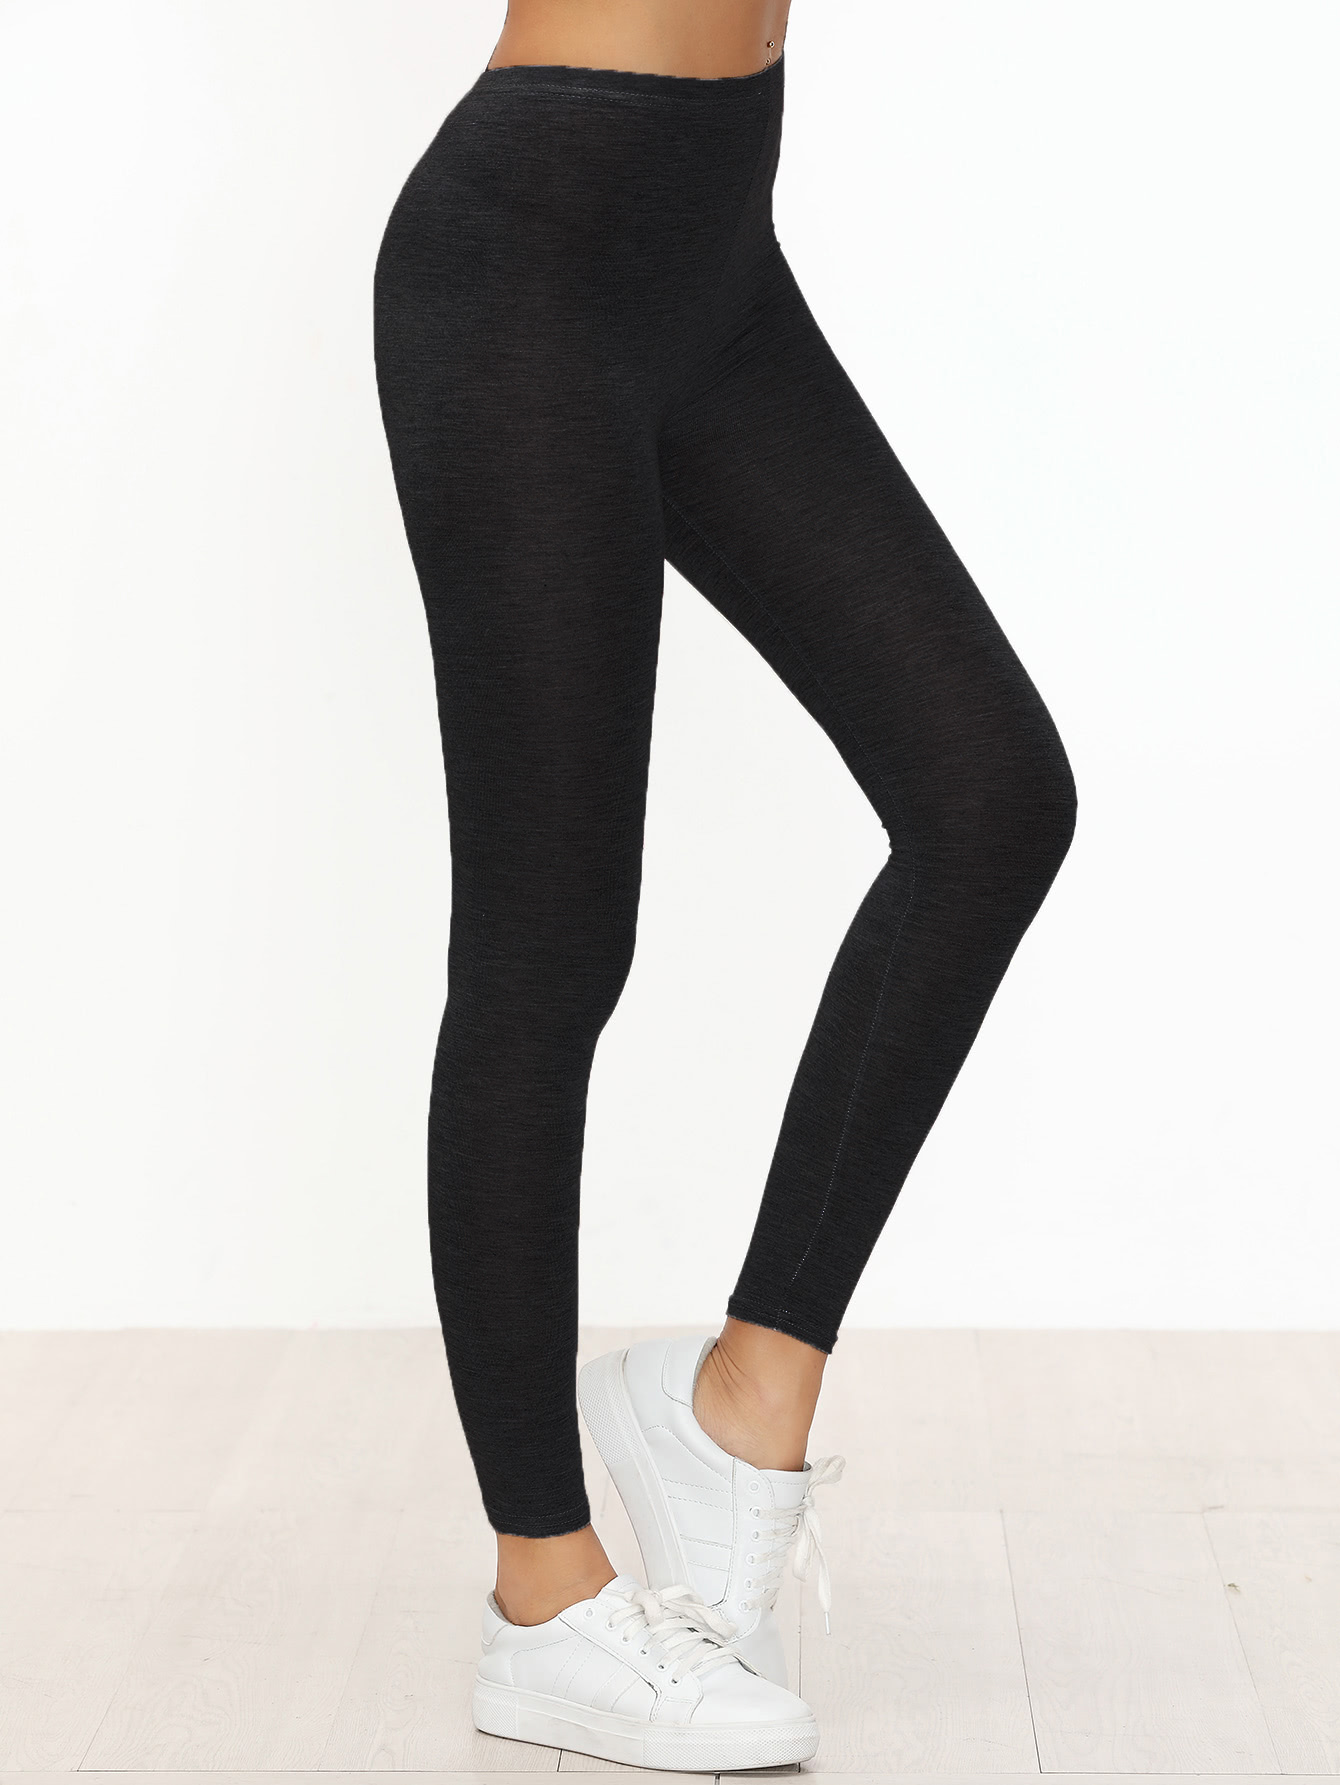 Shop for kids skinny leggings online at Target. Free shipping on purchases over $35 and save 5% every day with your Target REDcard.